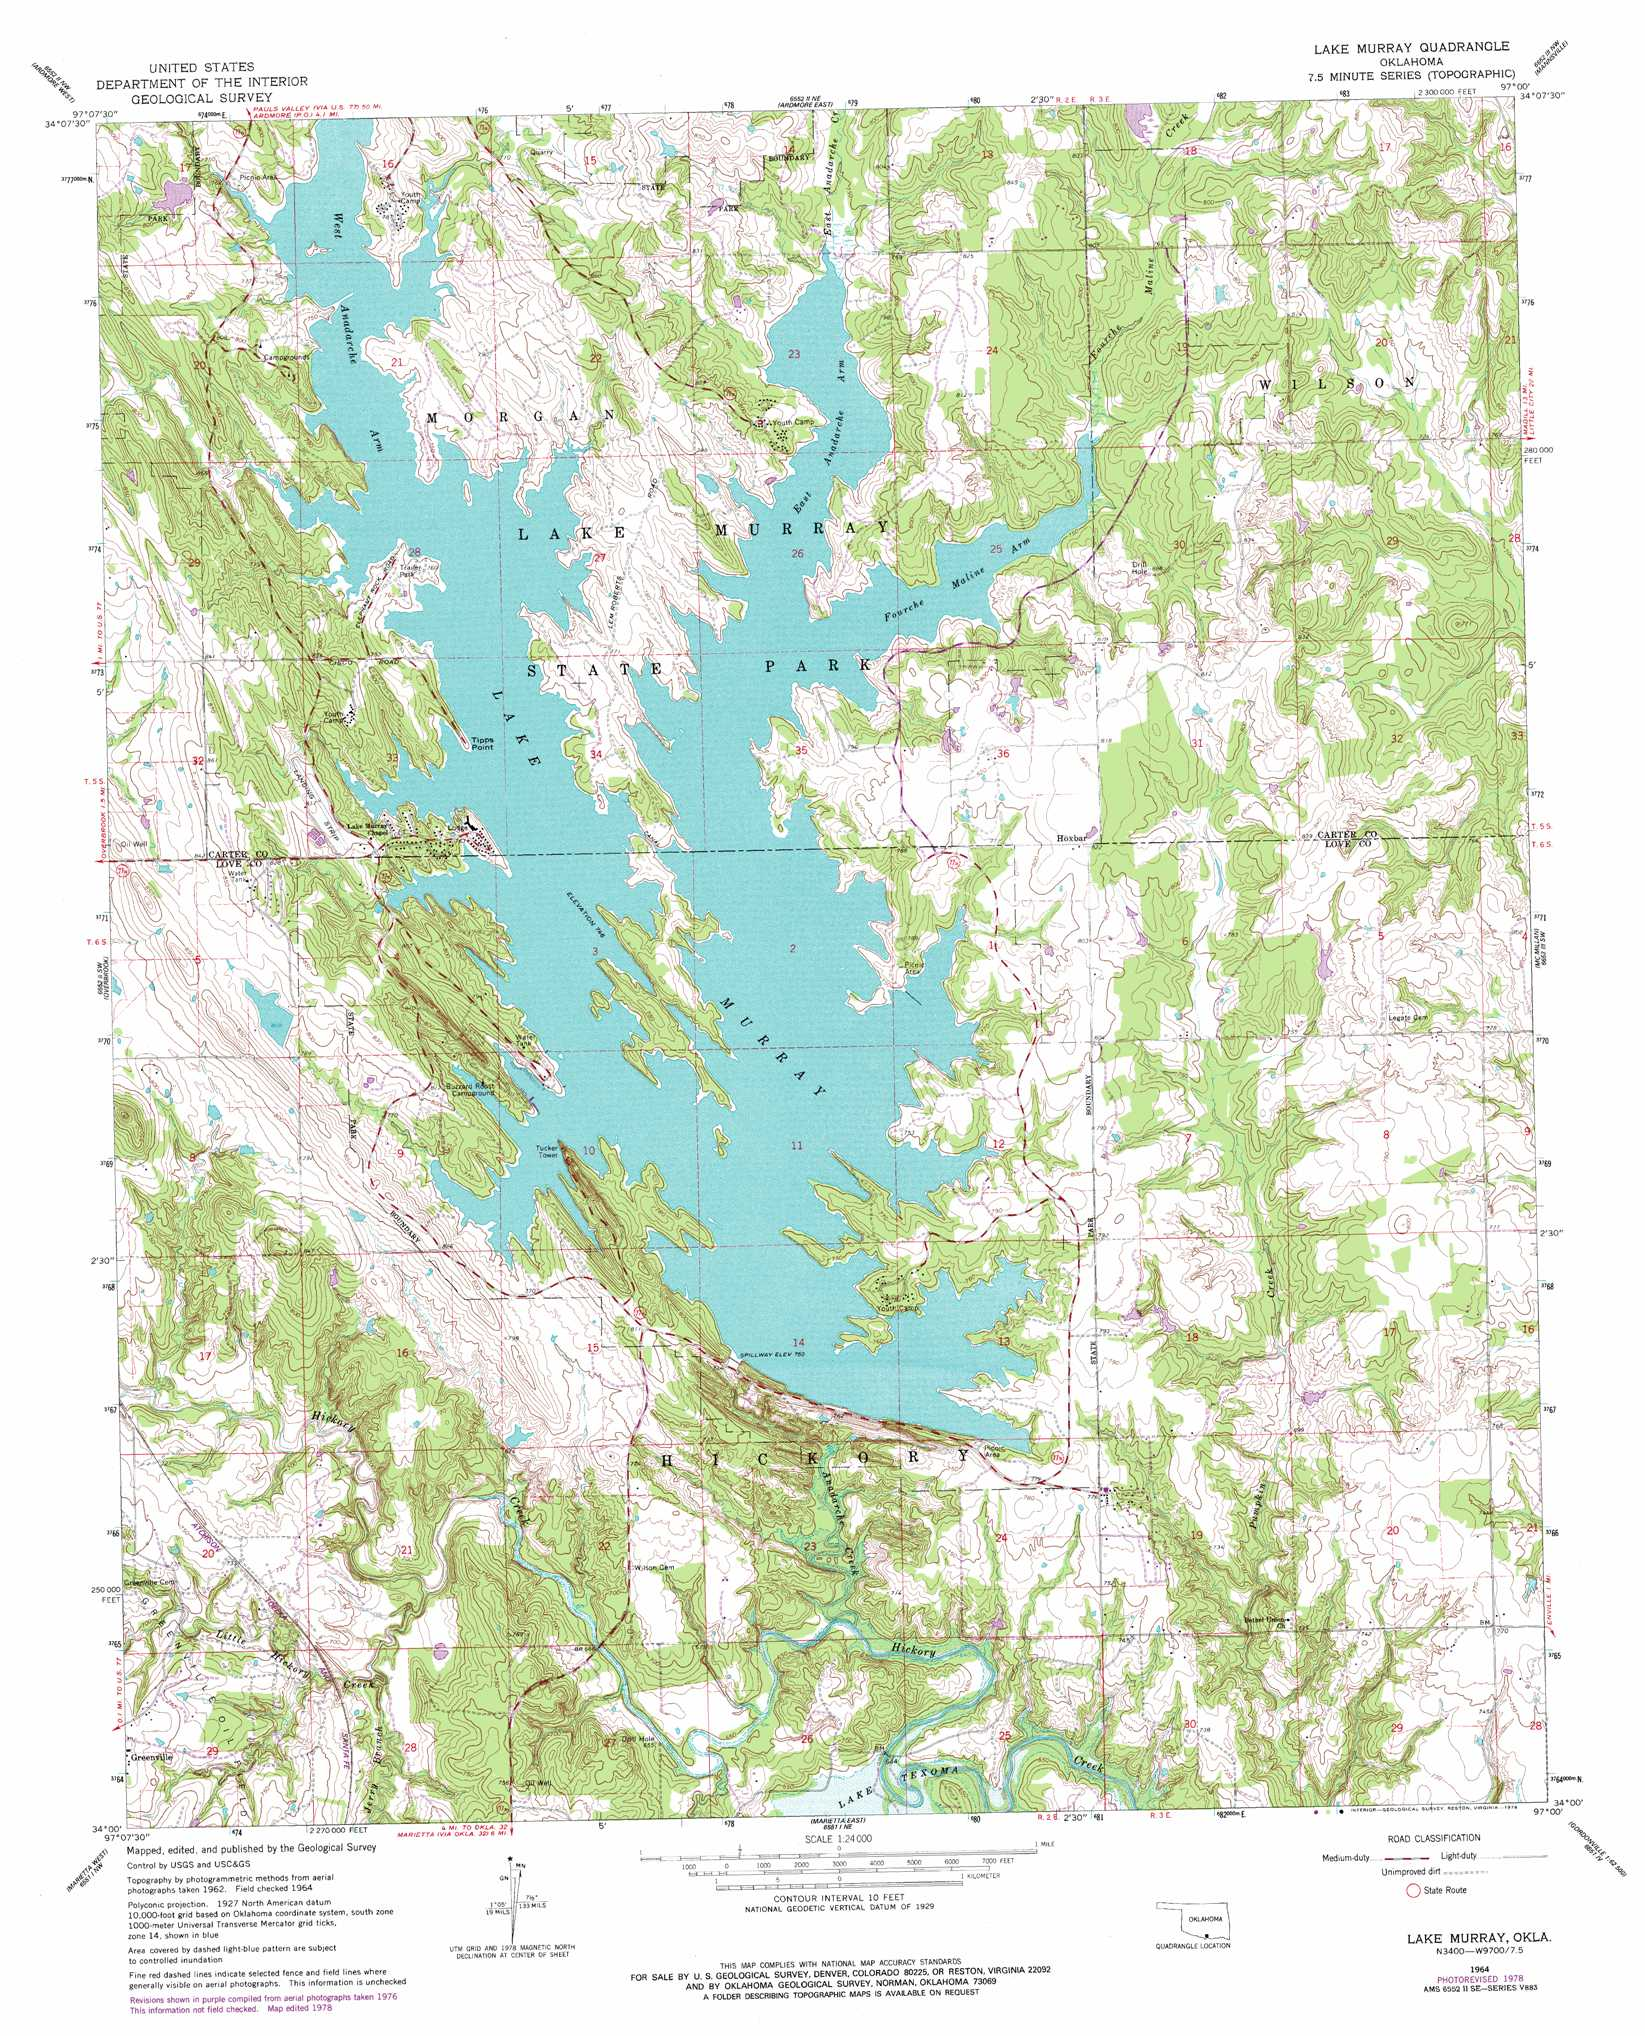 lake murray topographic map Lake Murray Topographic Map Ok Usgs Topo Quad 34097a1 lake murray topographic map